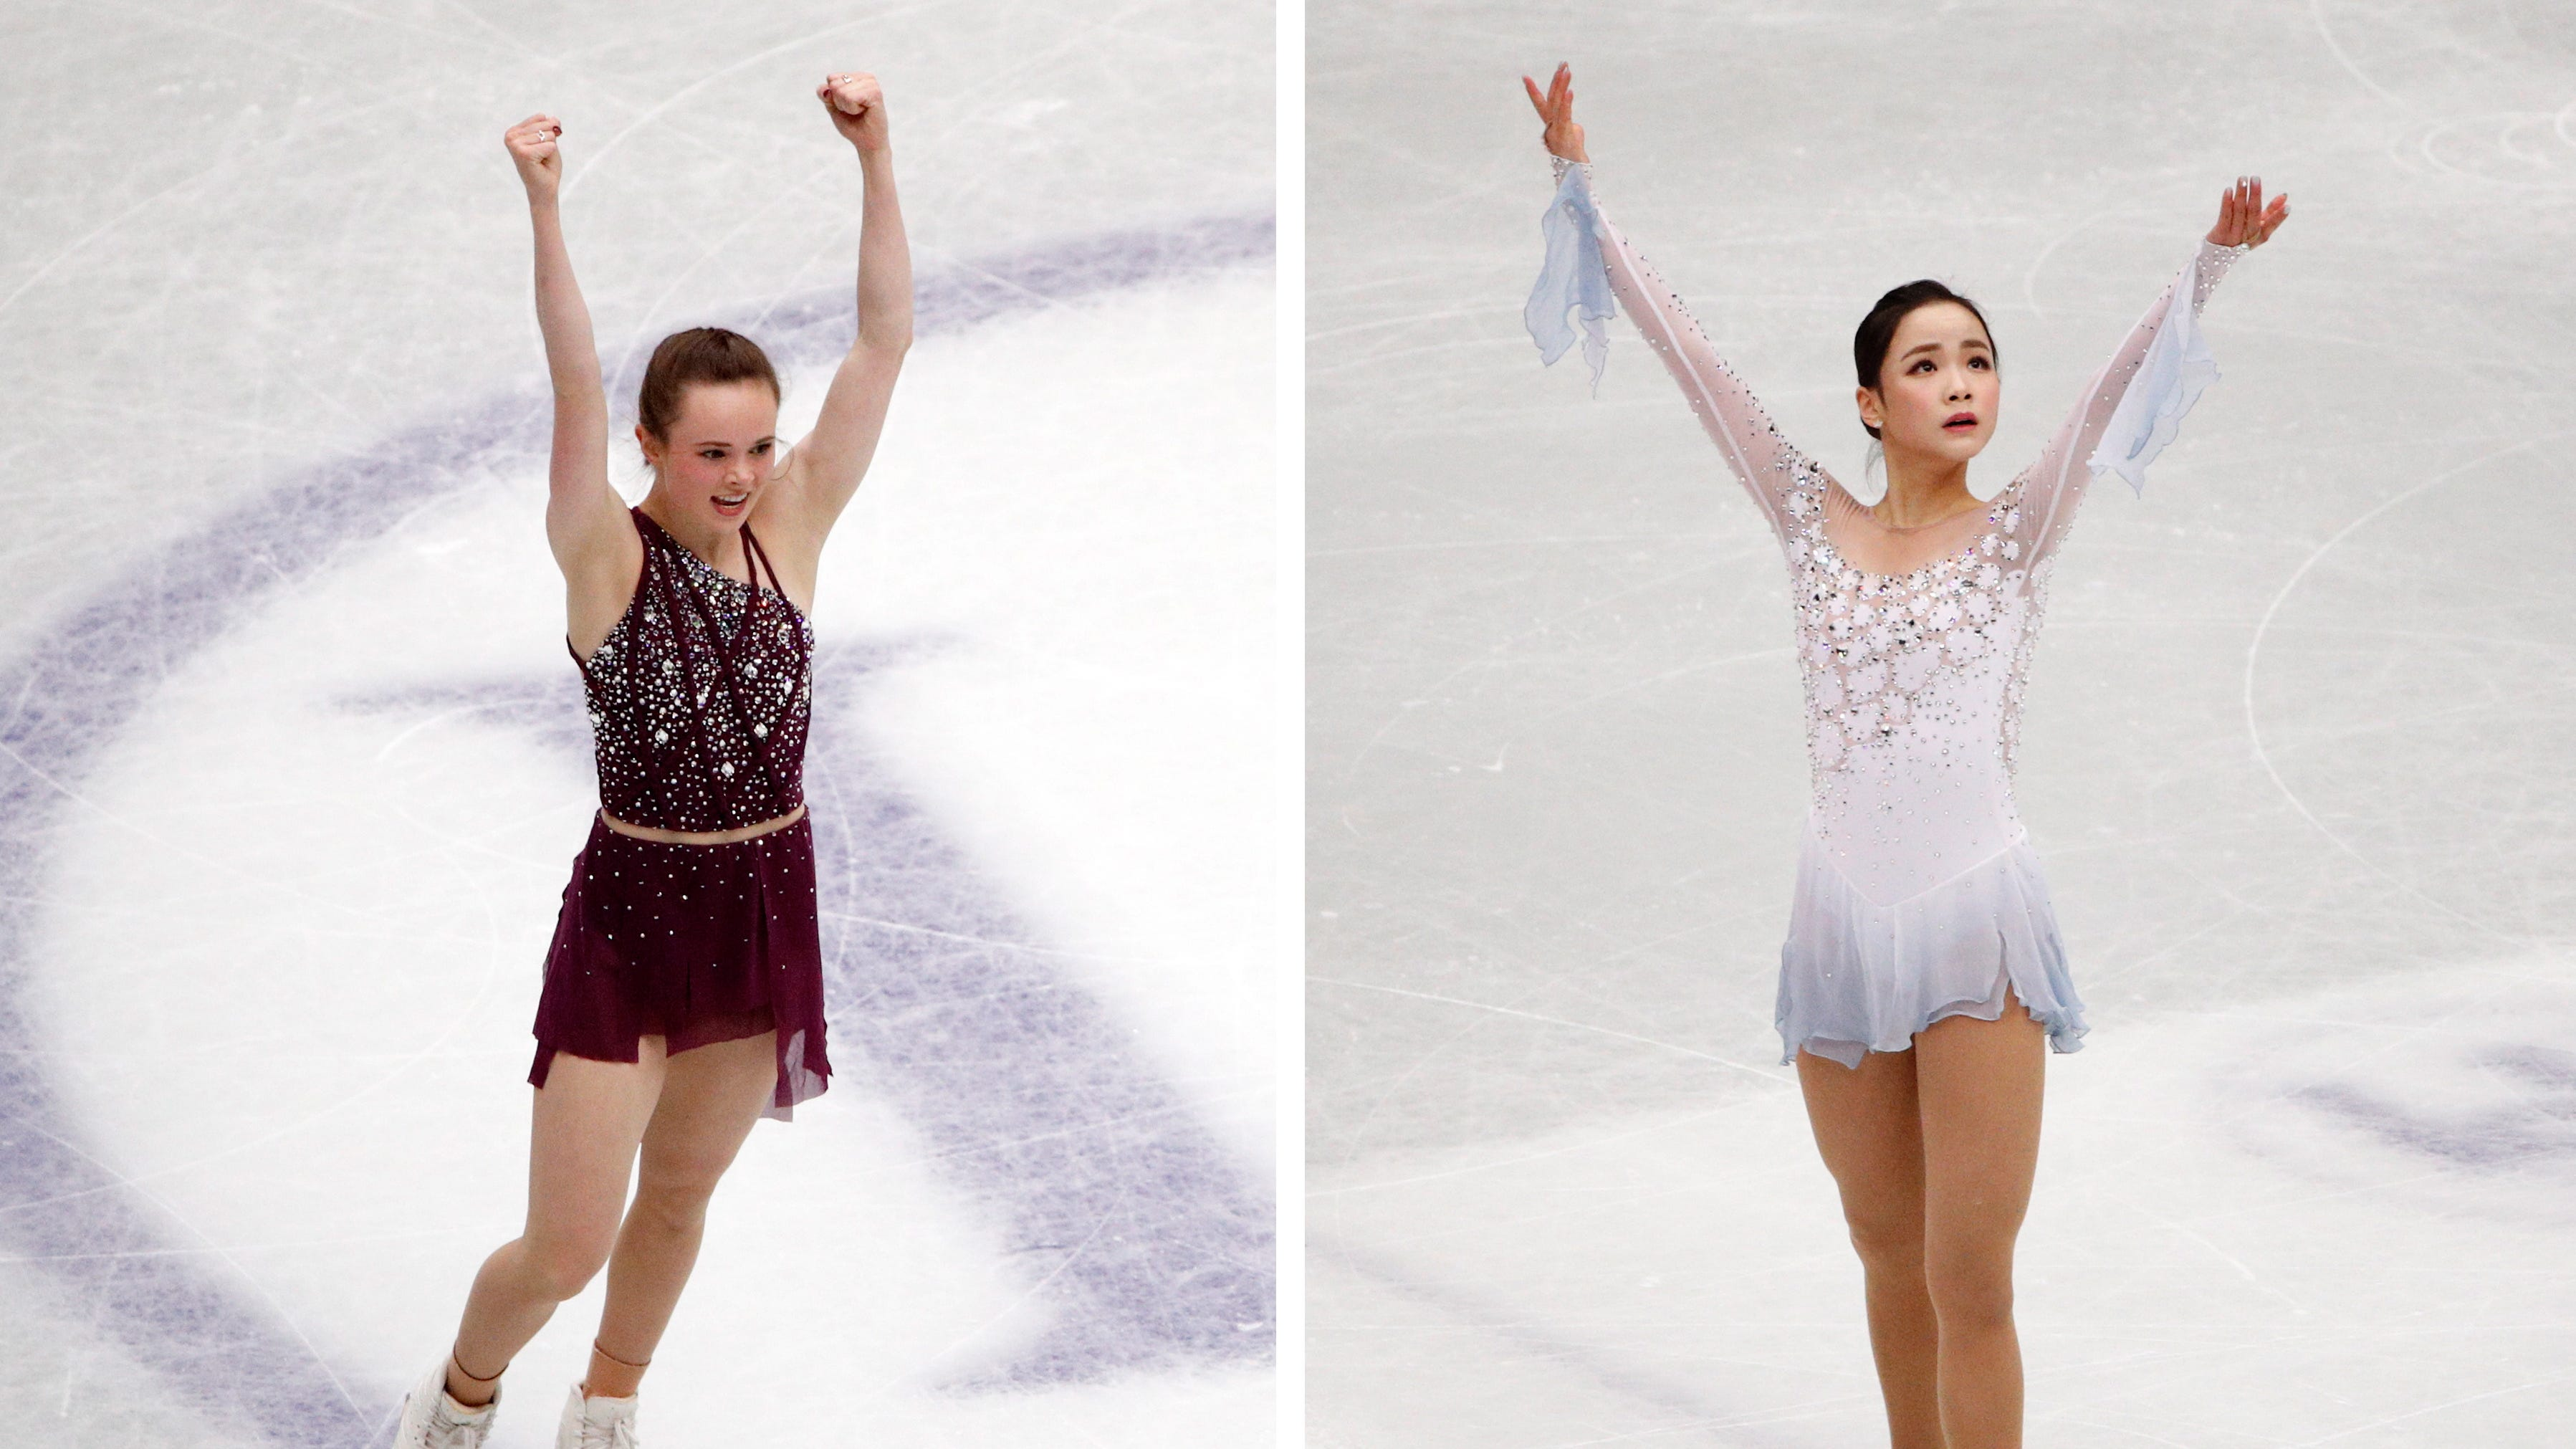 A composite file picture of Mariah Bell (left) of the USA and Eunsoo Lim (right) of South Korea performing during the  short program event of the 2019 ISU World Figure Skating Championships in Saitama, Japan, on March 20.